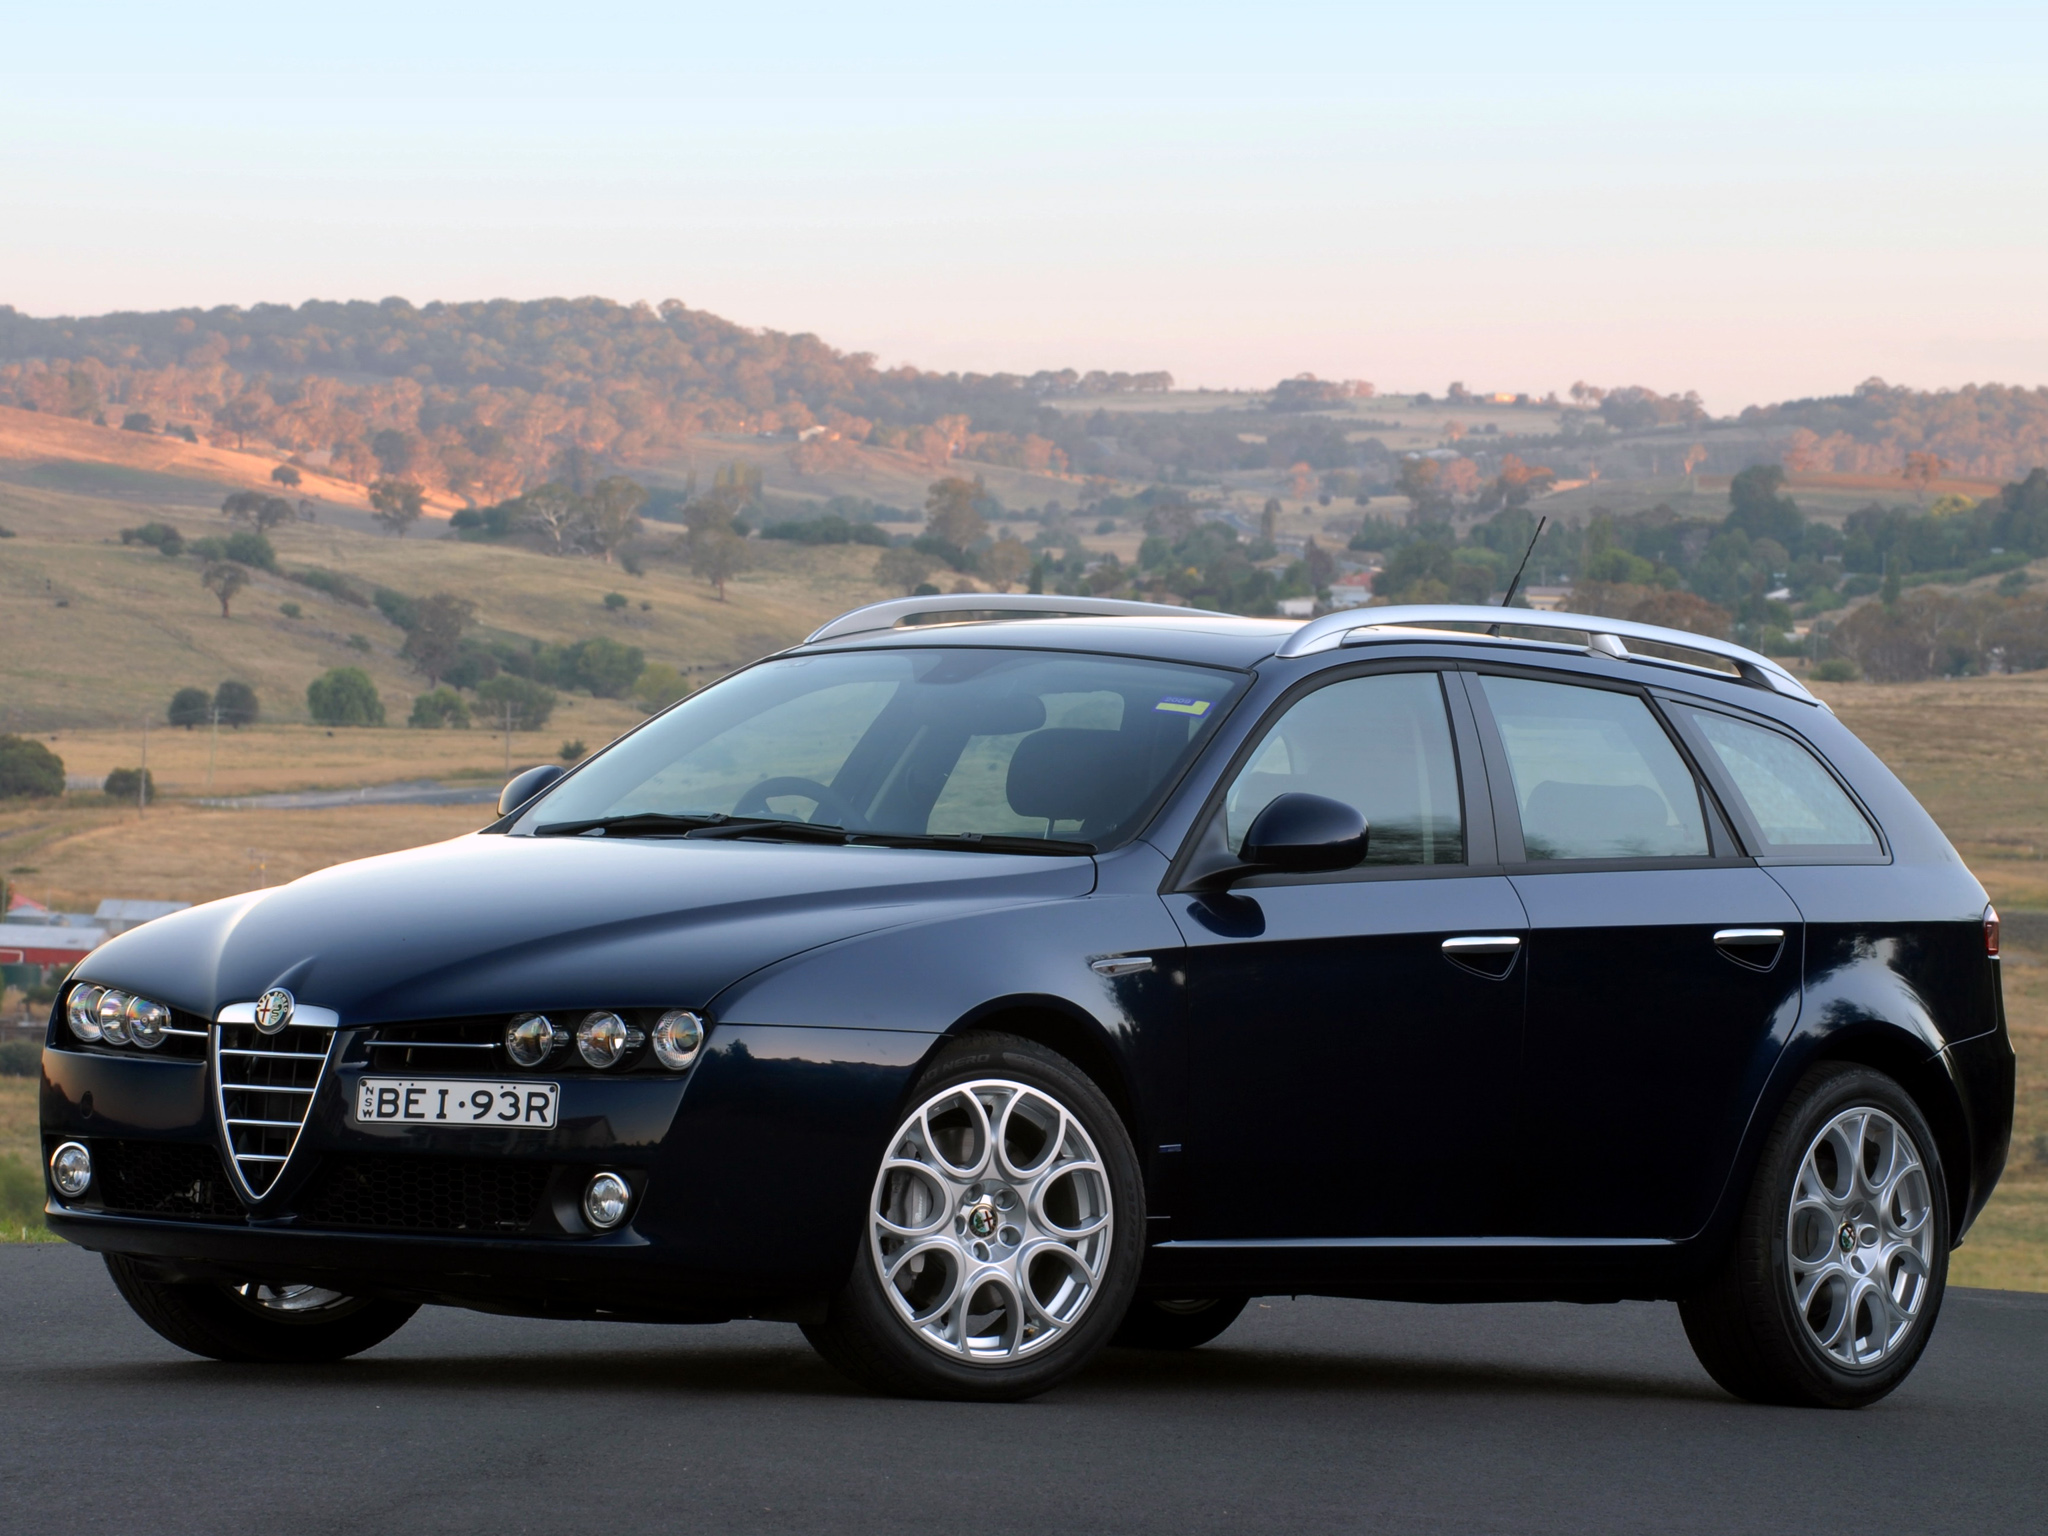 2008 alfa romeo 159 sportwagon pictures information and specs auto. Black Bedroom Furniture Sets. Home Design Ideas